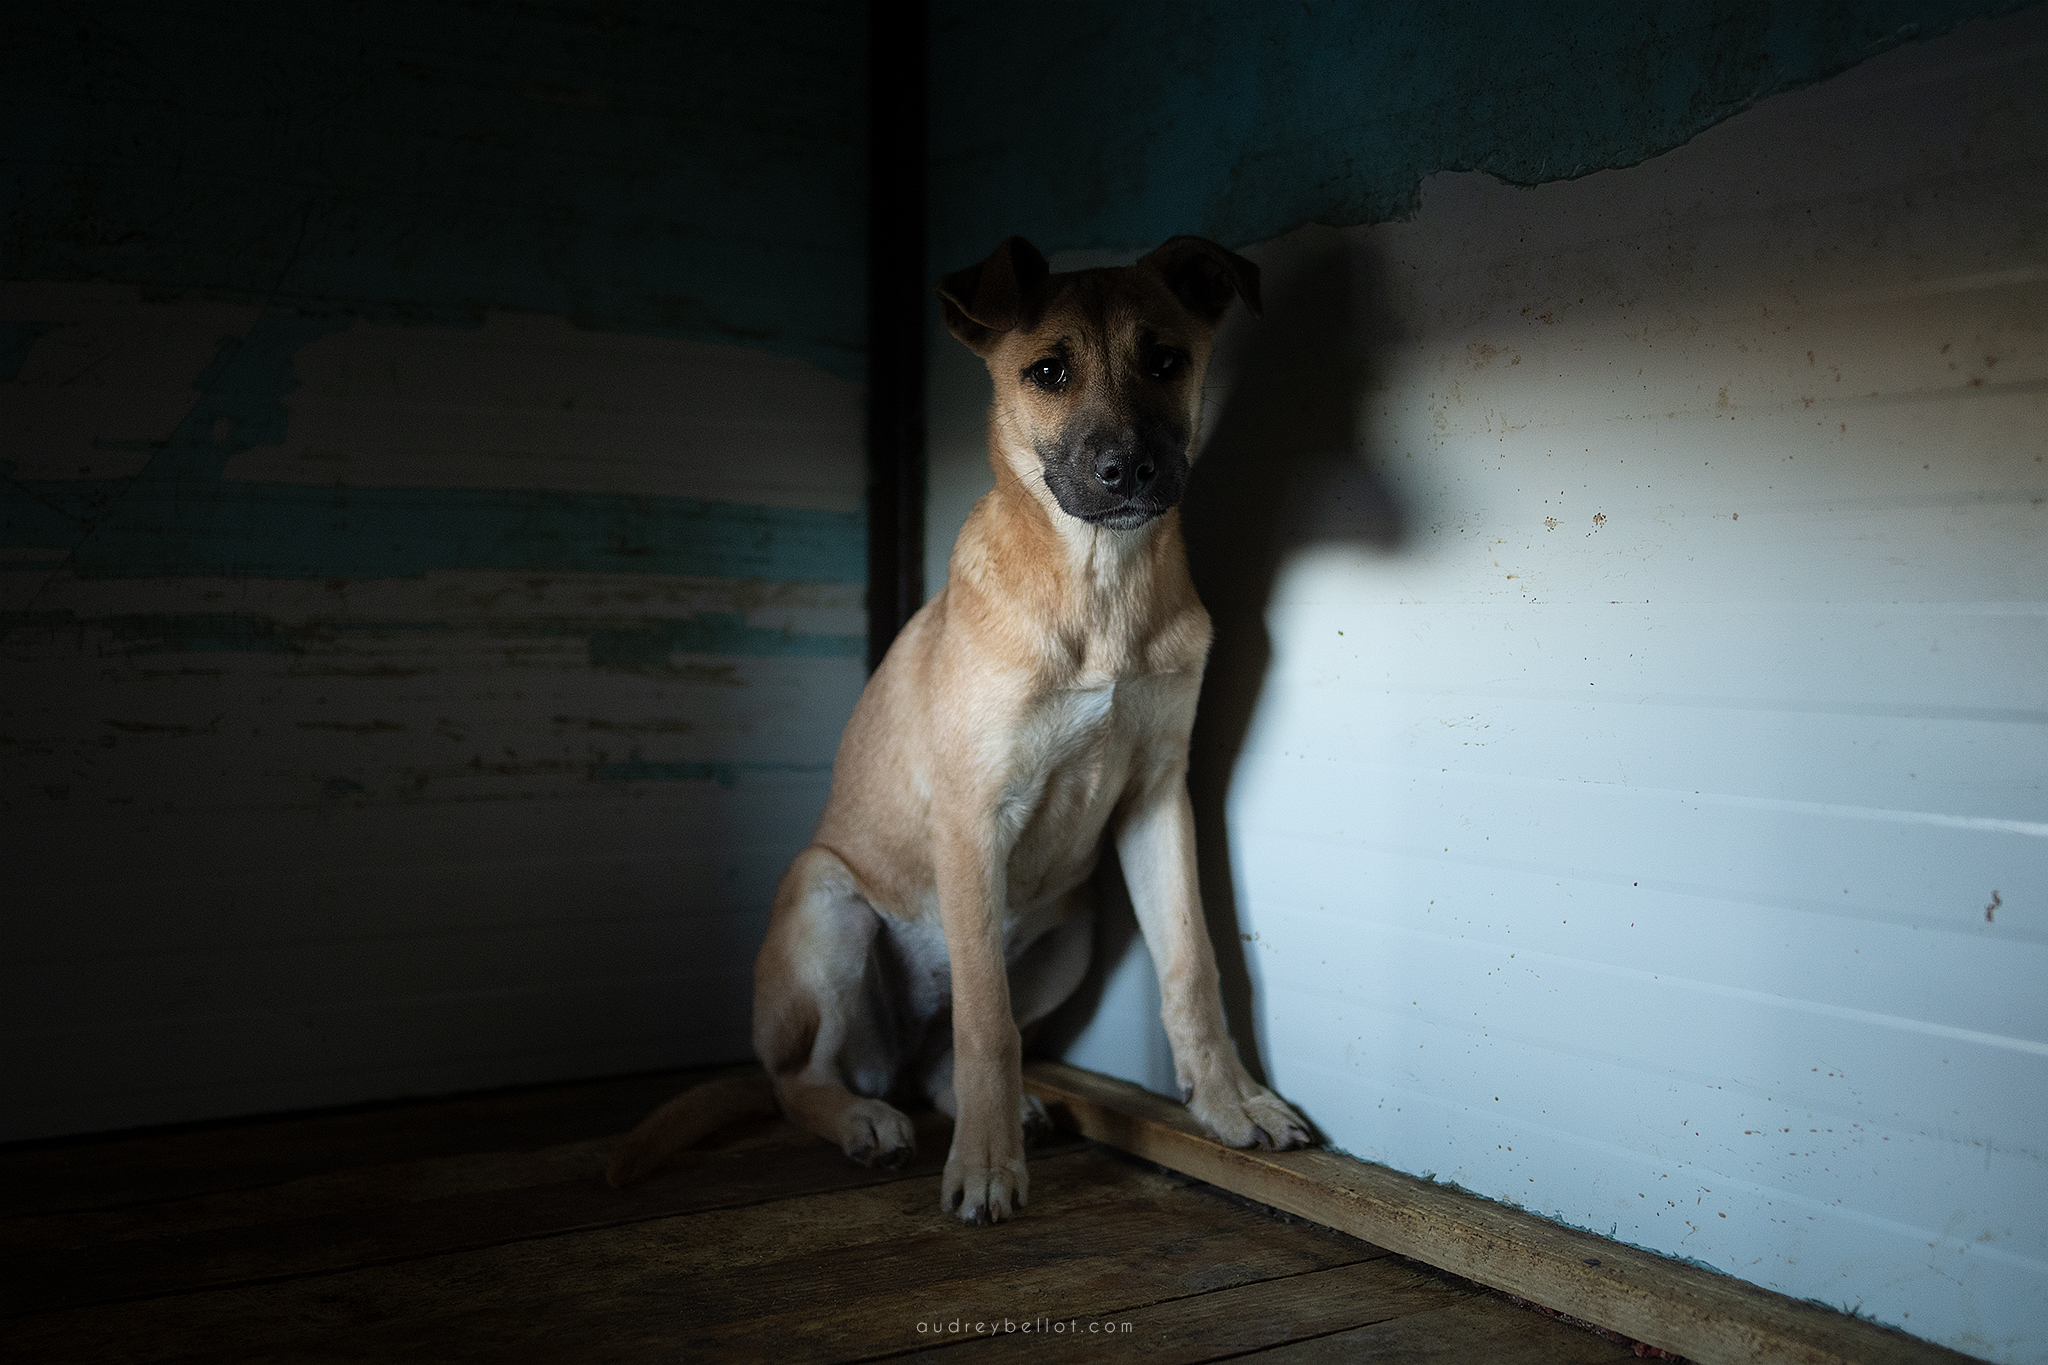 Romanian dog shelter dog photographer abandonned dogs